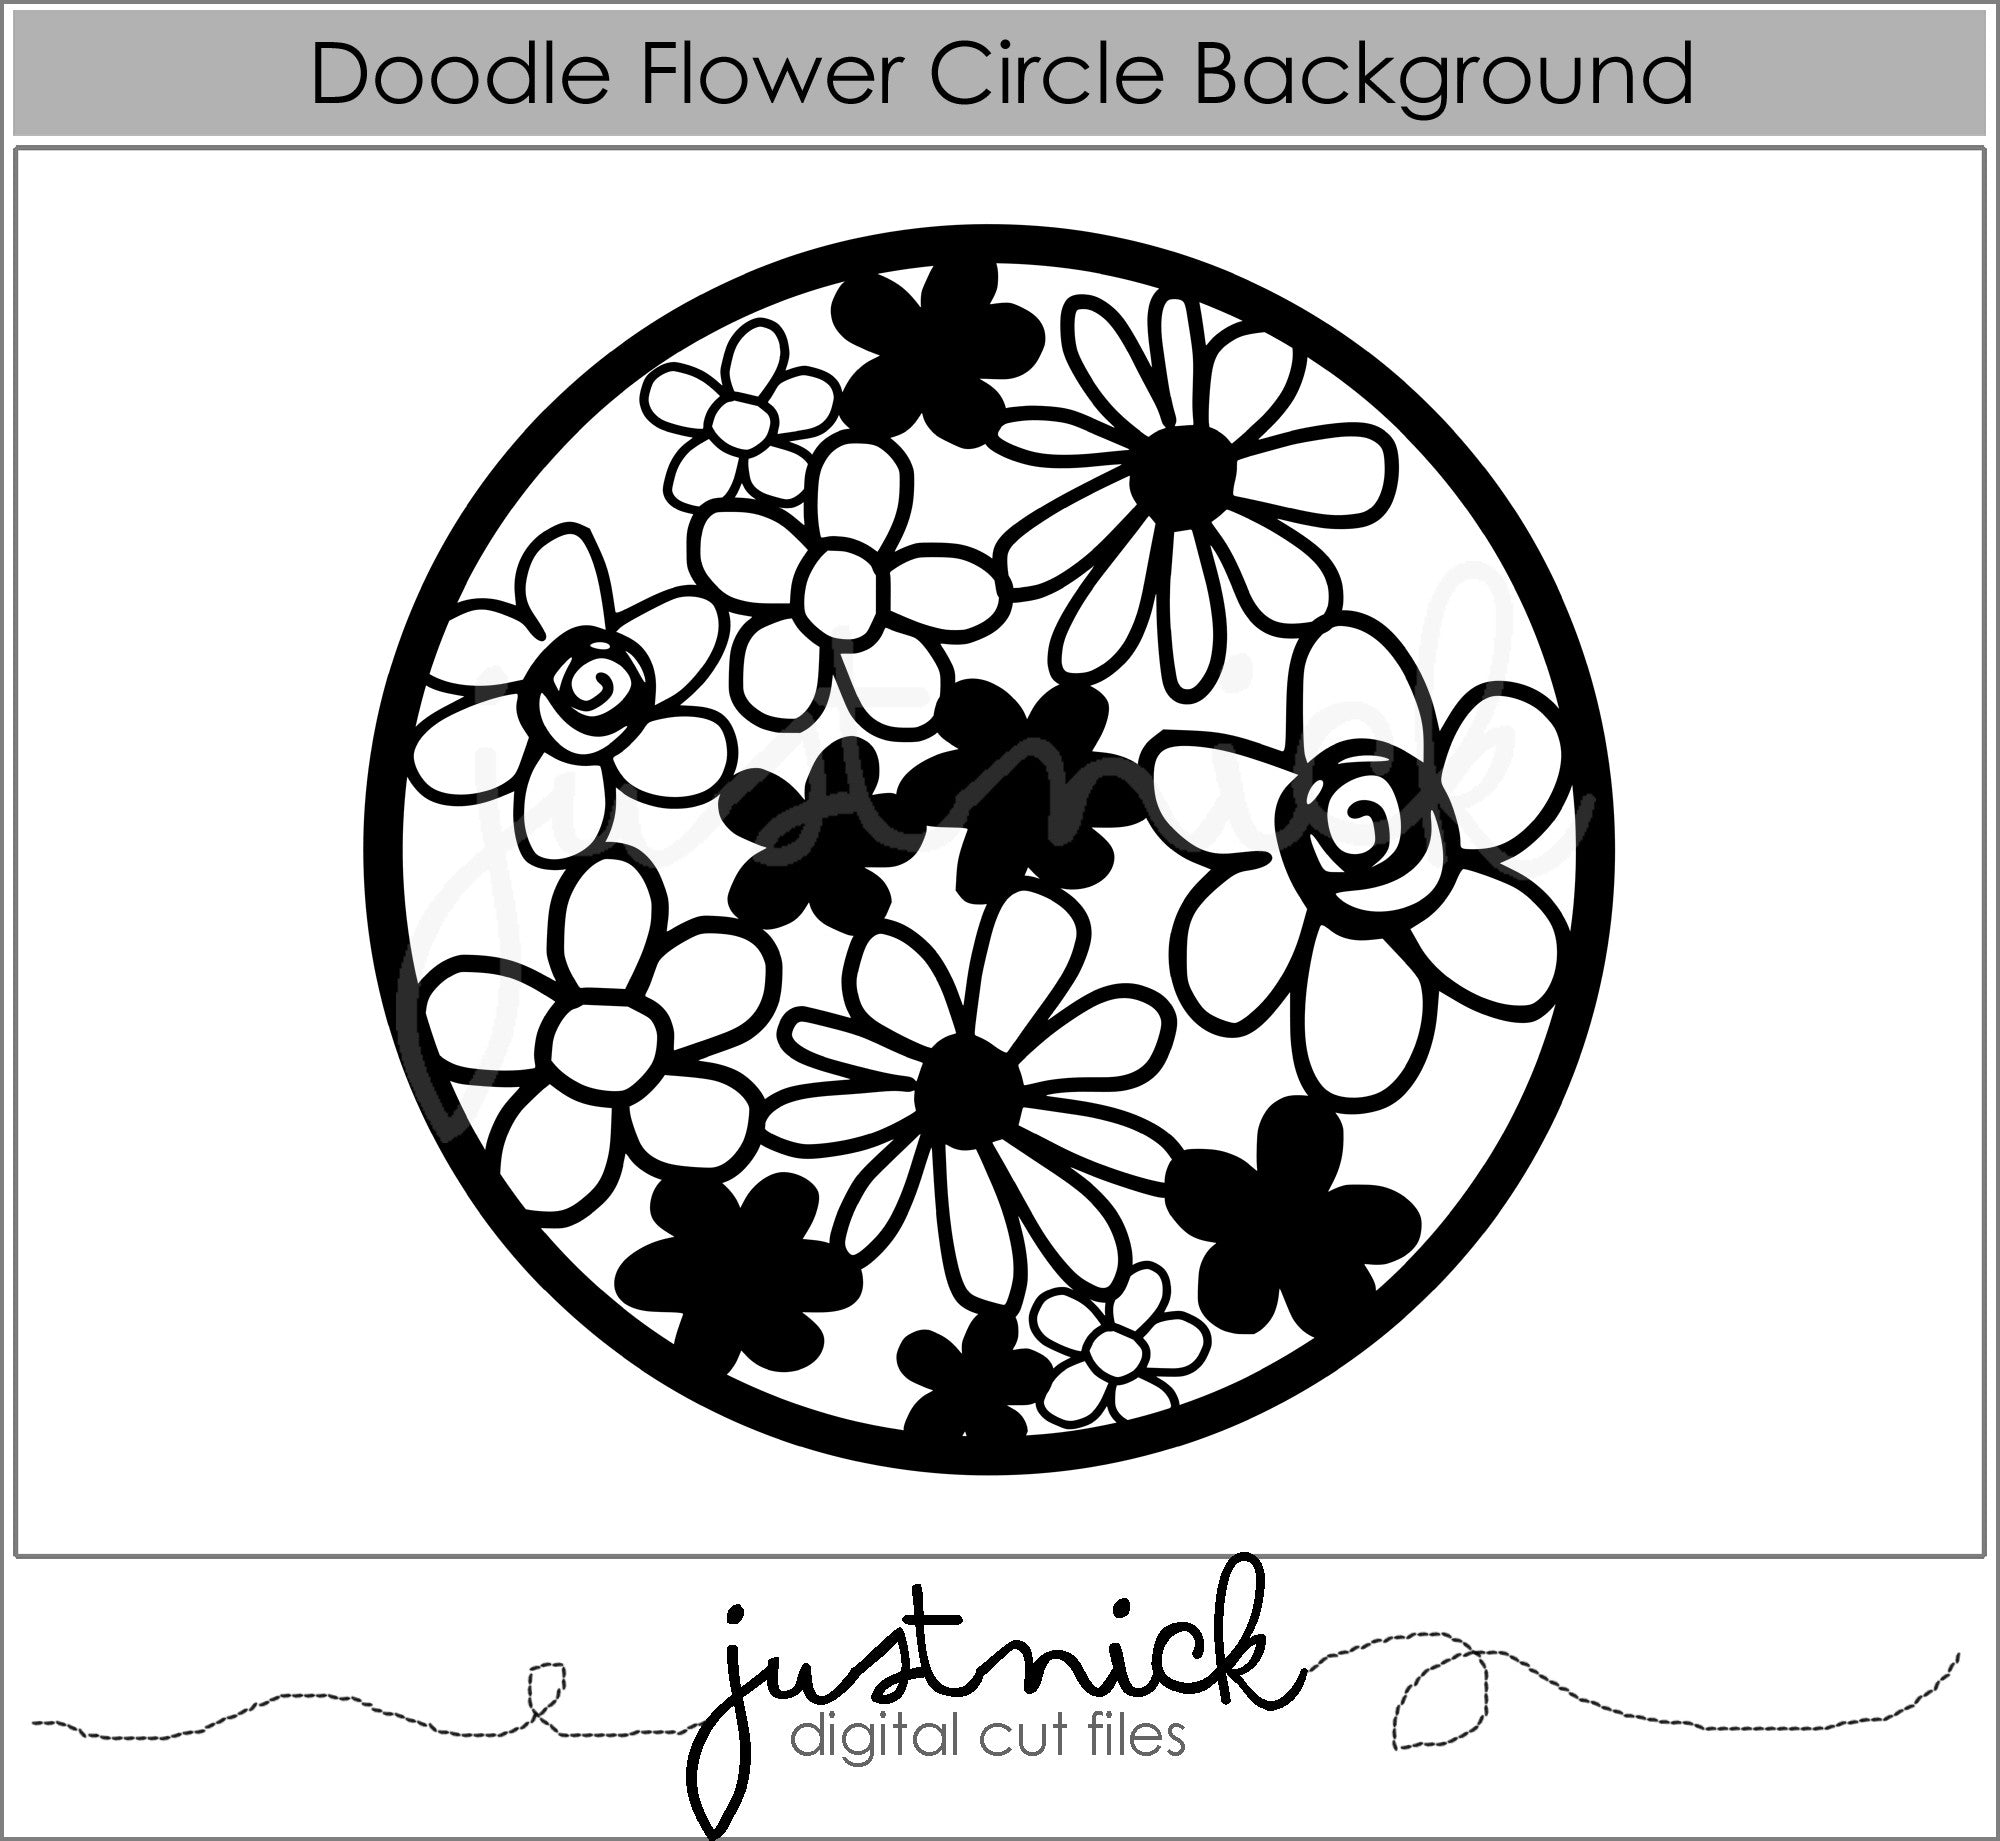 http://justnick.myshopify.com/products/doodle-floral-circle-background?variant=24028957895